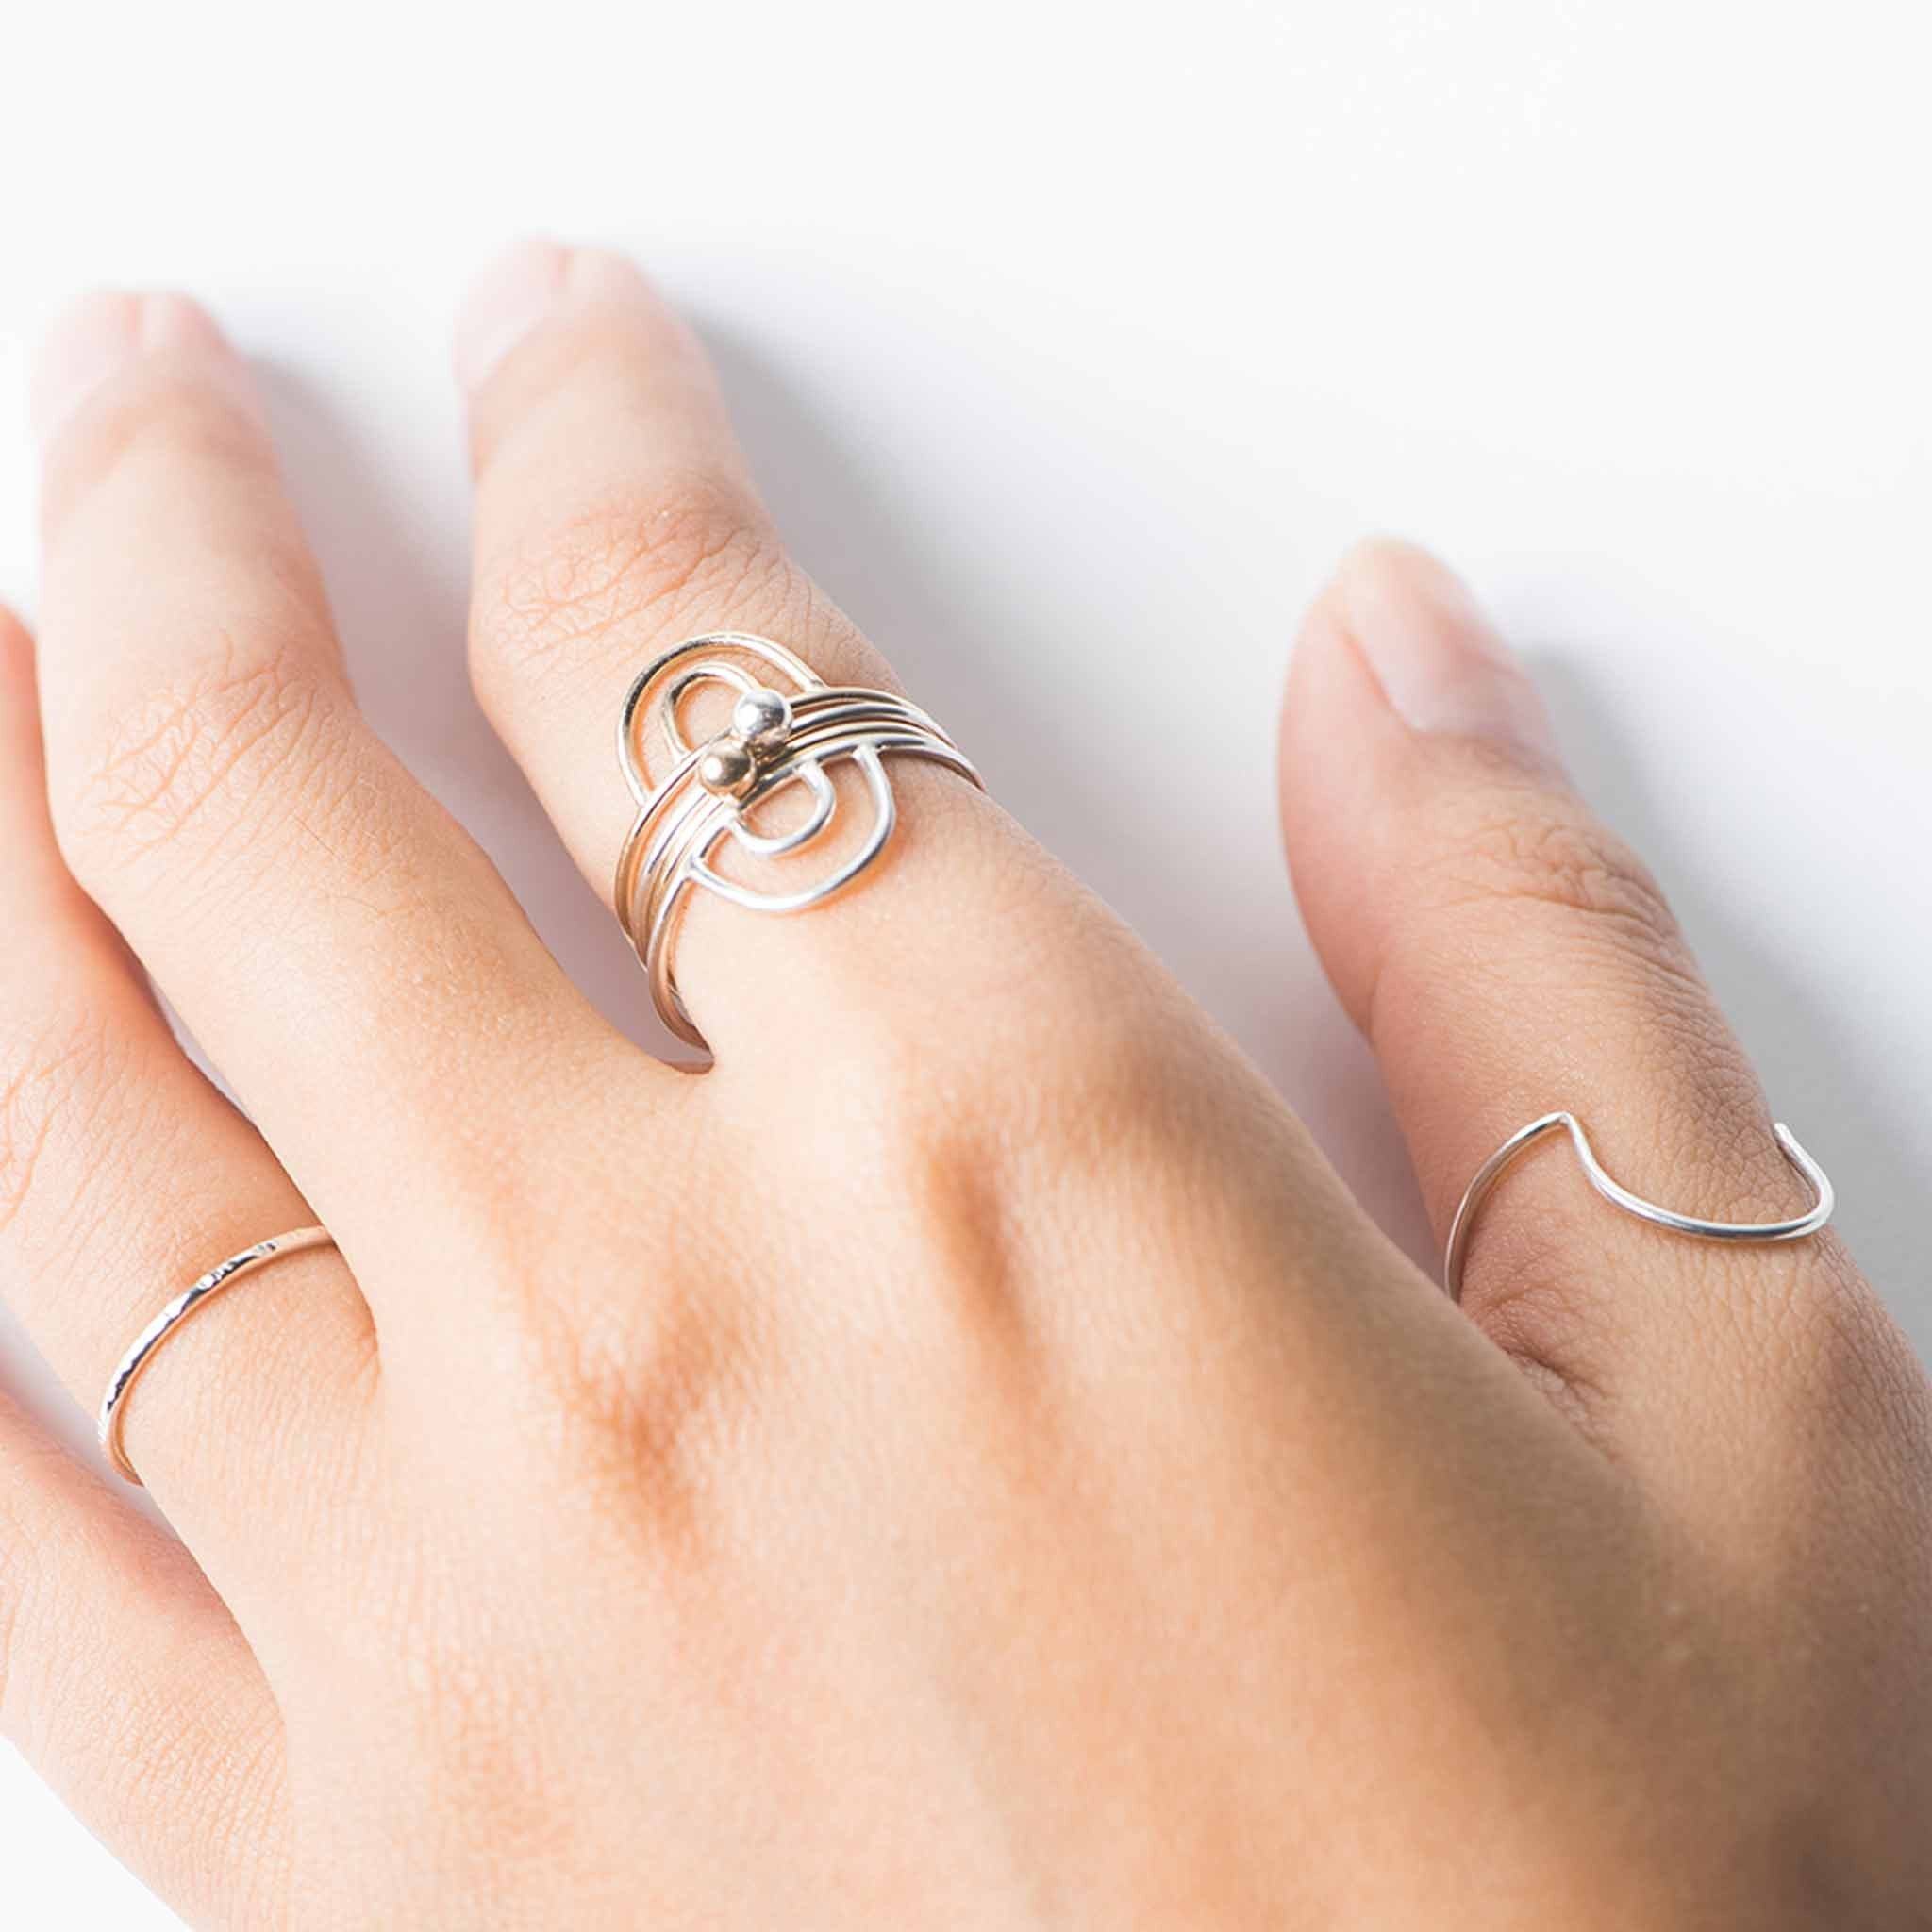 the stacking moon delicate finery fine straits sterling ring products rings jewellery combinations silver